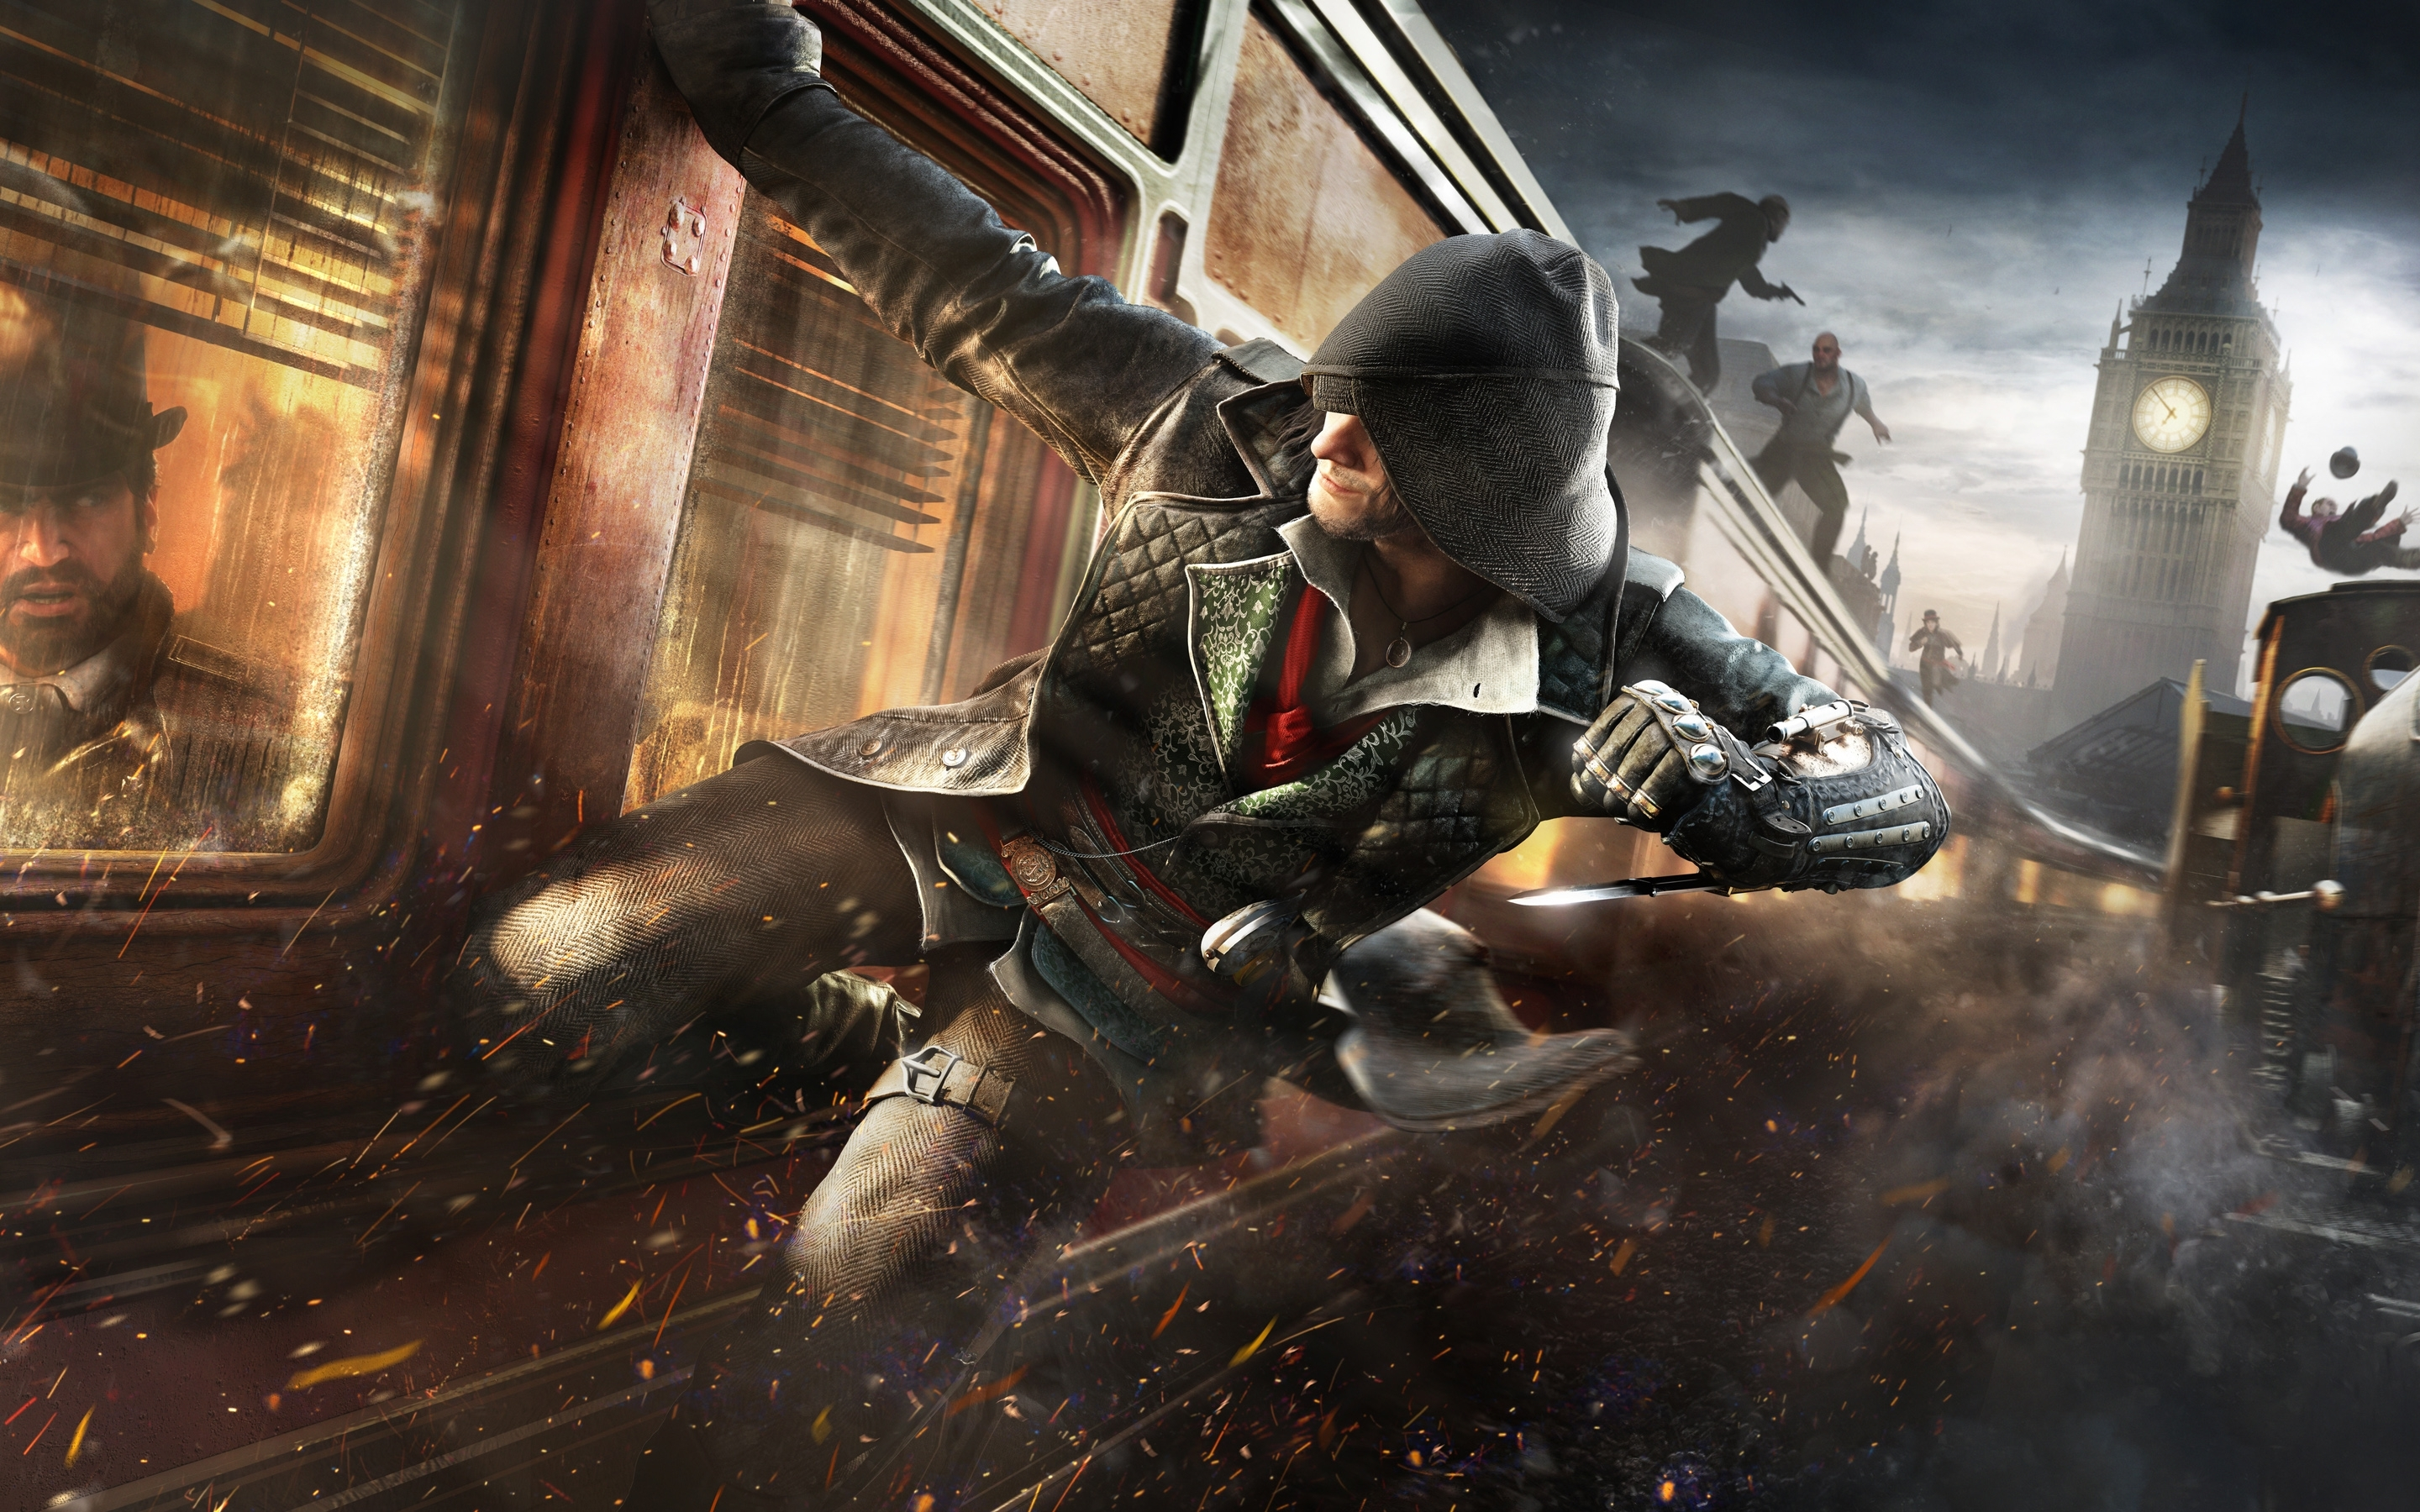 10 New Assassin's Creed Syndicate Wallpaper Hd FULL HD 1080p For PC Background